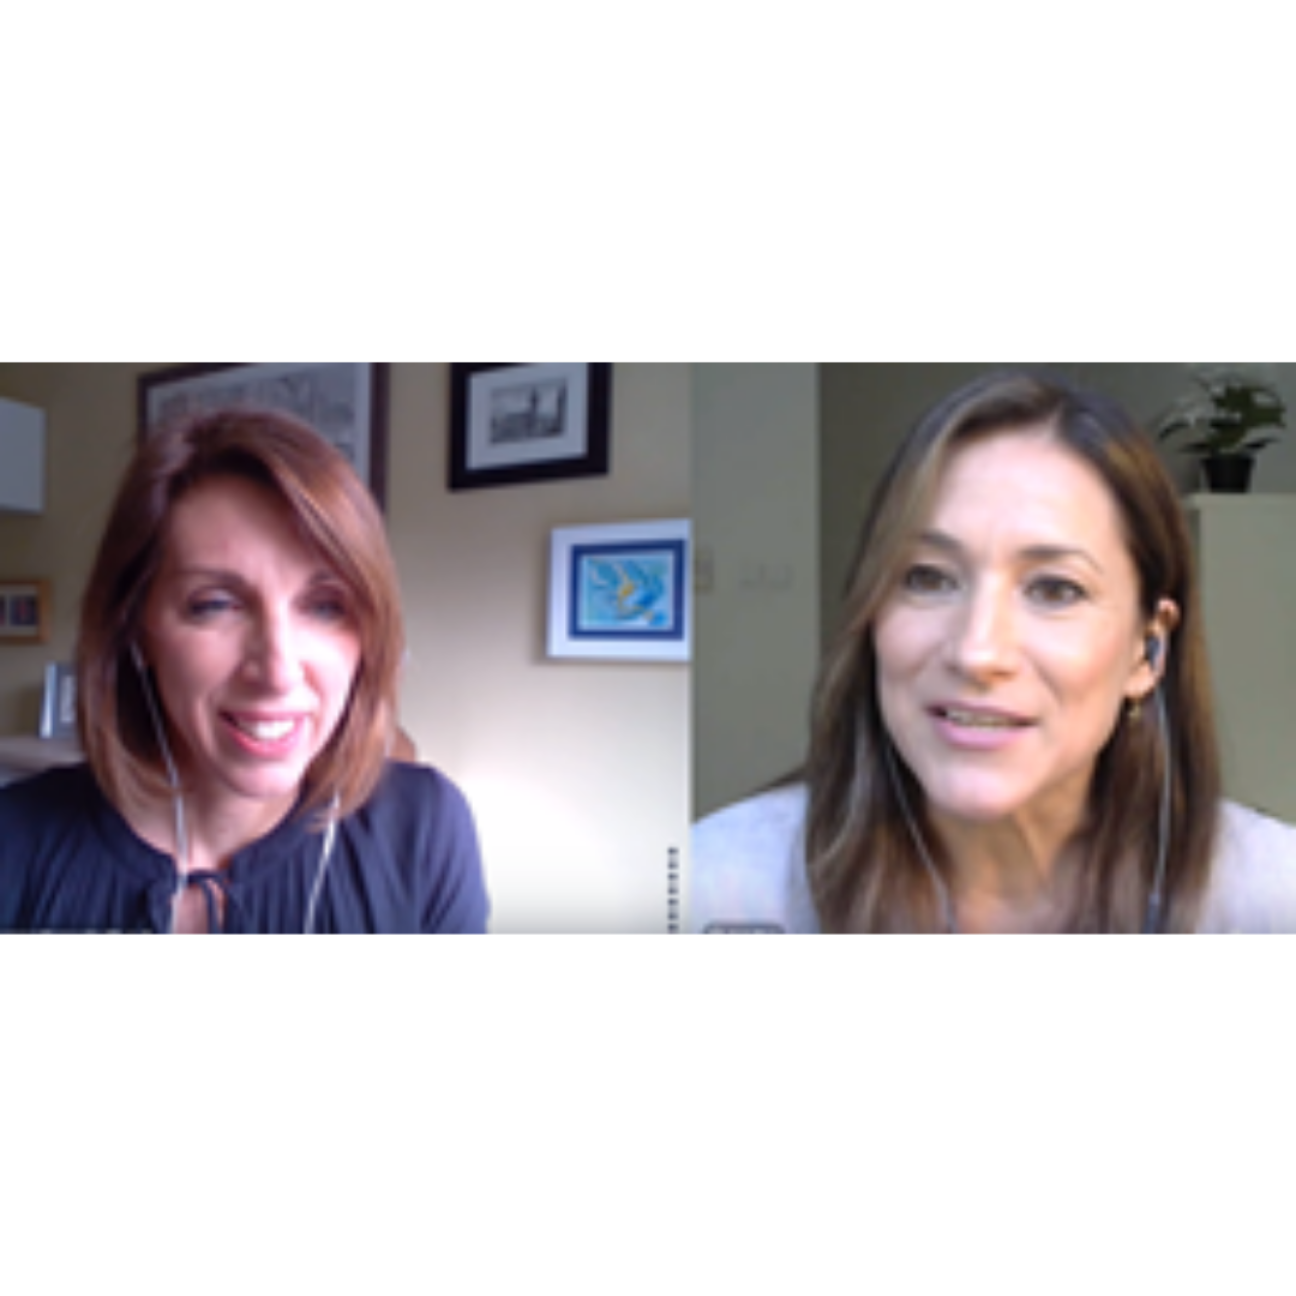 093 The midlife method to losing weight and feeling great - Sam Rice and Dr Louise Newson